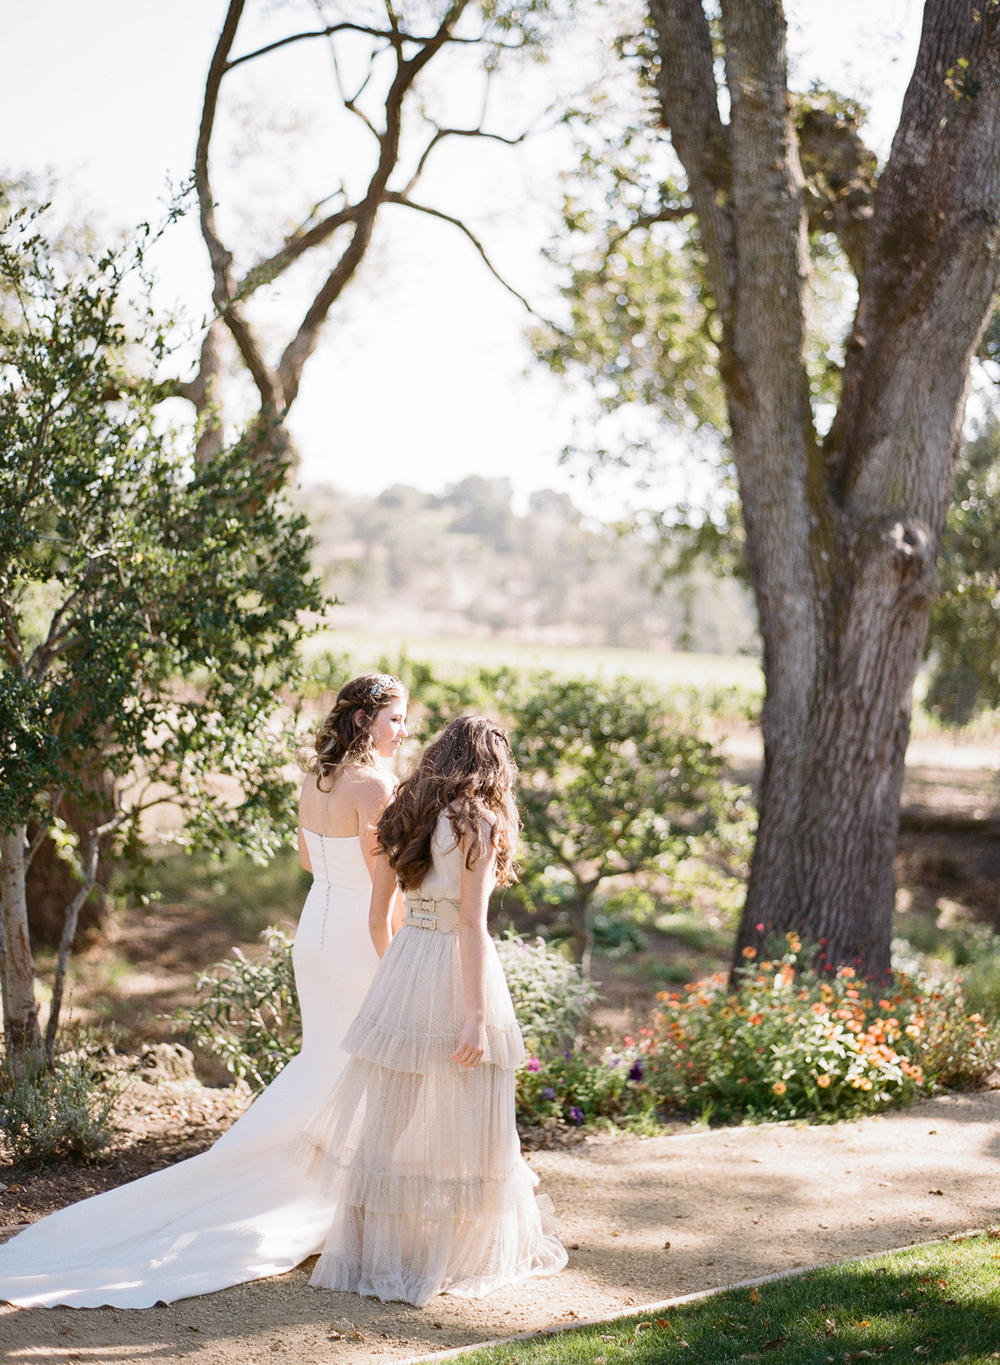 Tali and her sister, dressed in a tiered chiffon gown, walk towards the ceremony space; photo by Sylvie Gil